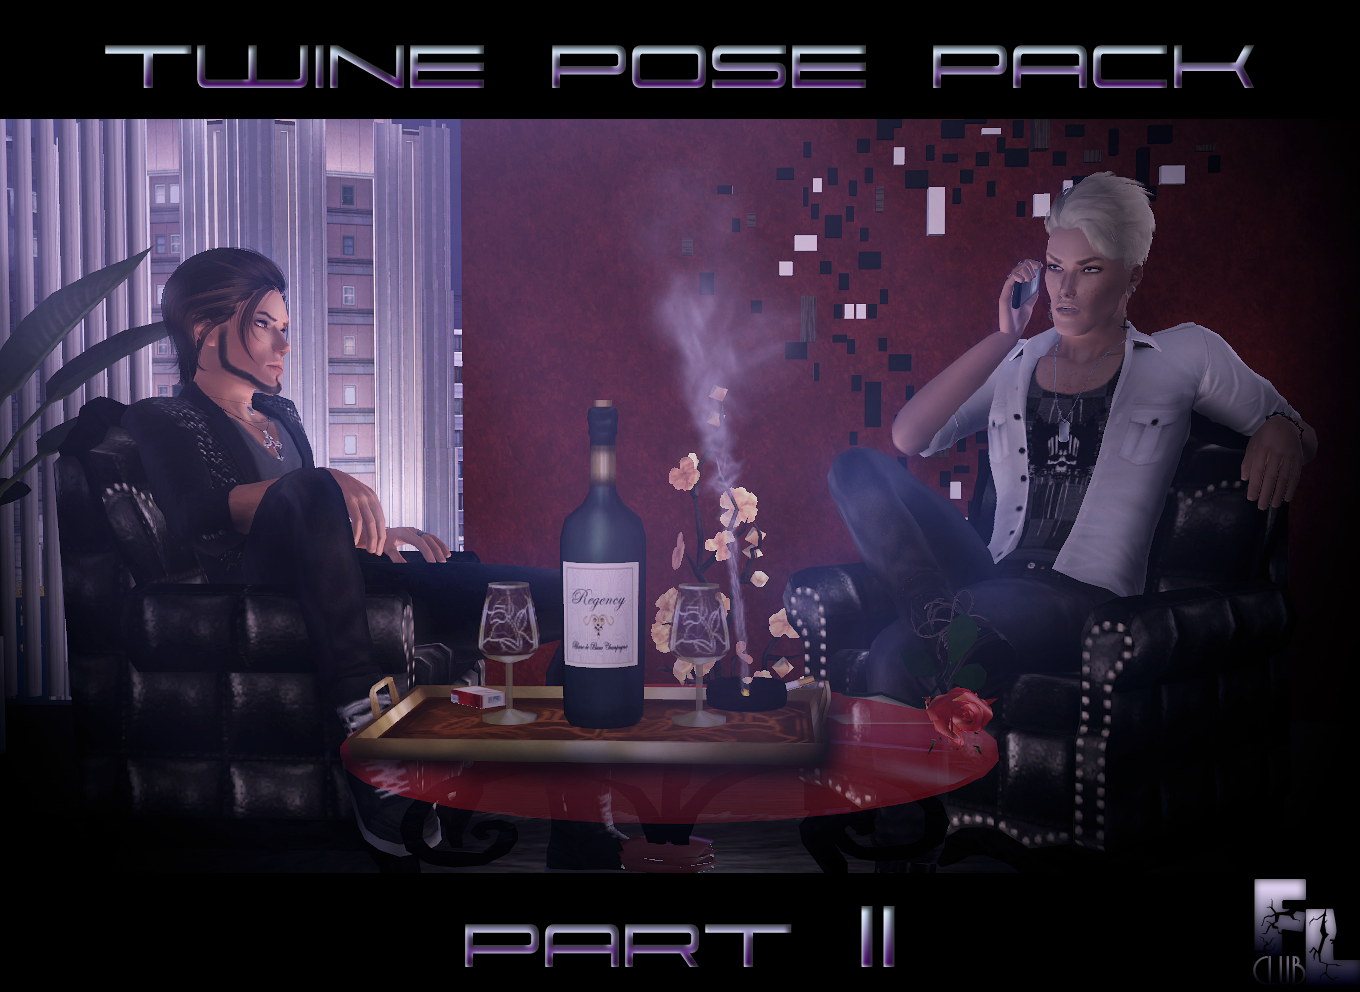 Twine pose pack part II by F&L cLub